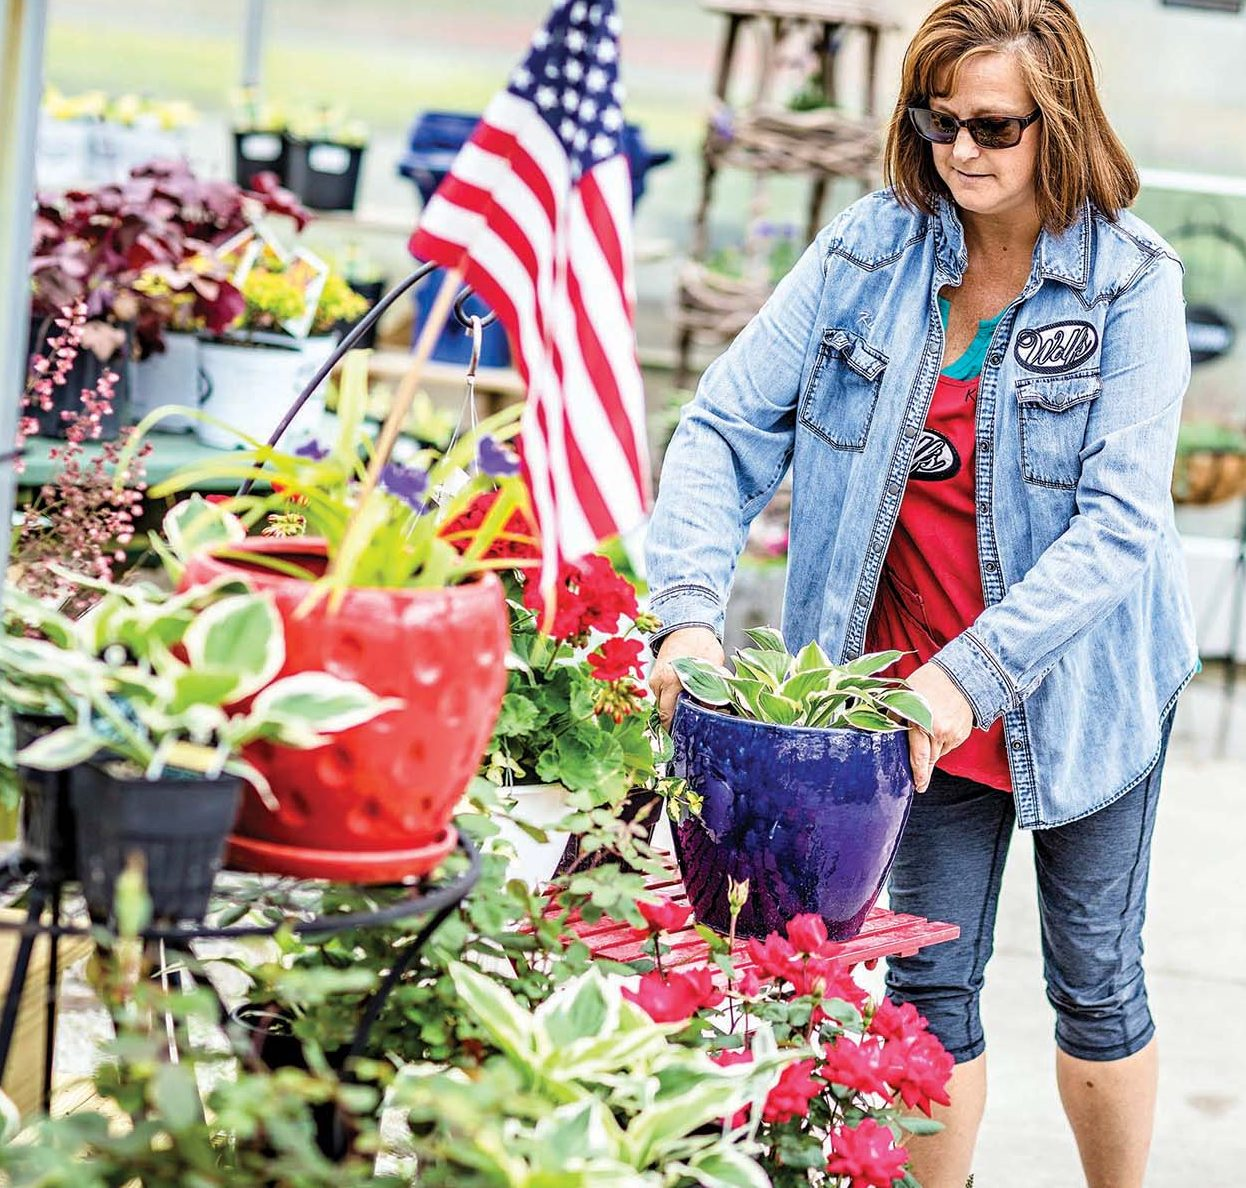 Kim Ringler, Plant Production, Wolf's Blooms Berries photographed Thursday, May 25, 2017 in Bowling Green, Ohio works on organizing some Memorial Day arrangements at the greenhouse. (© James D. DeCamp | http://JamesDeCamp.com | 614-367-6366)